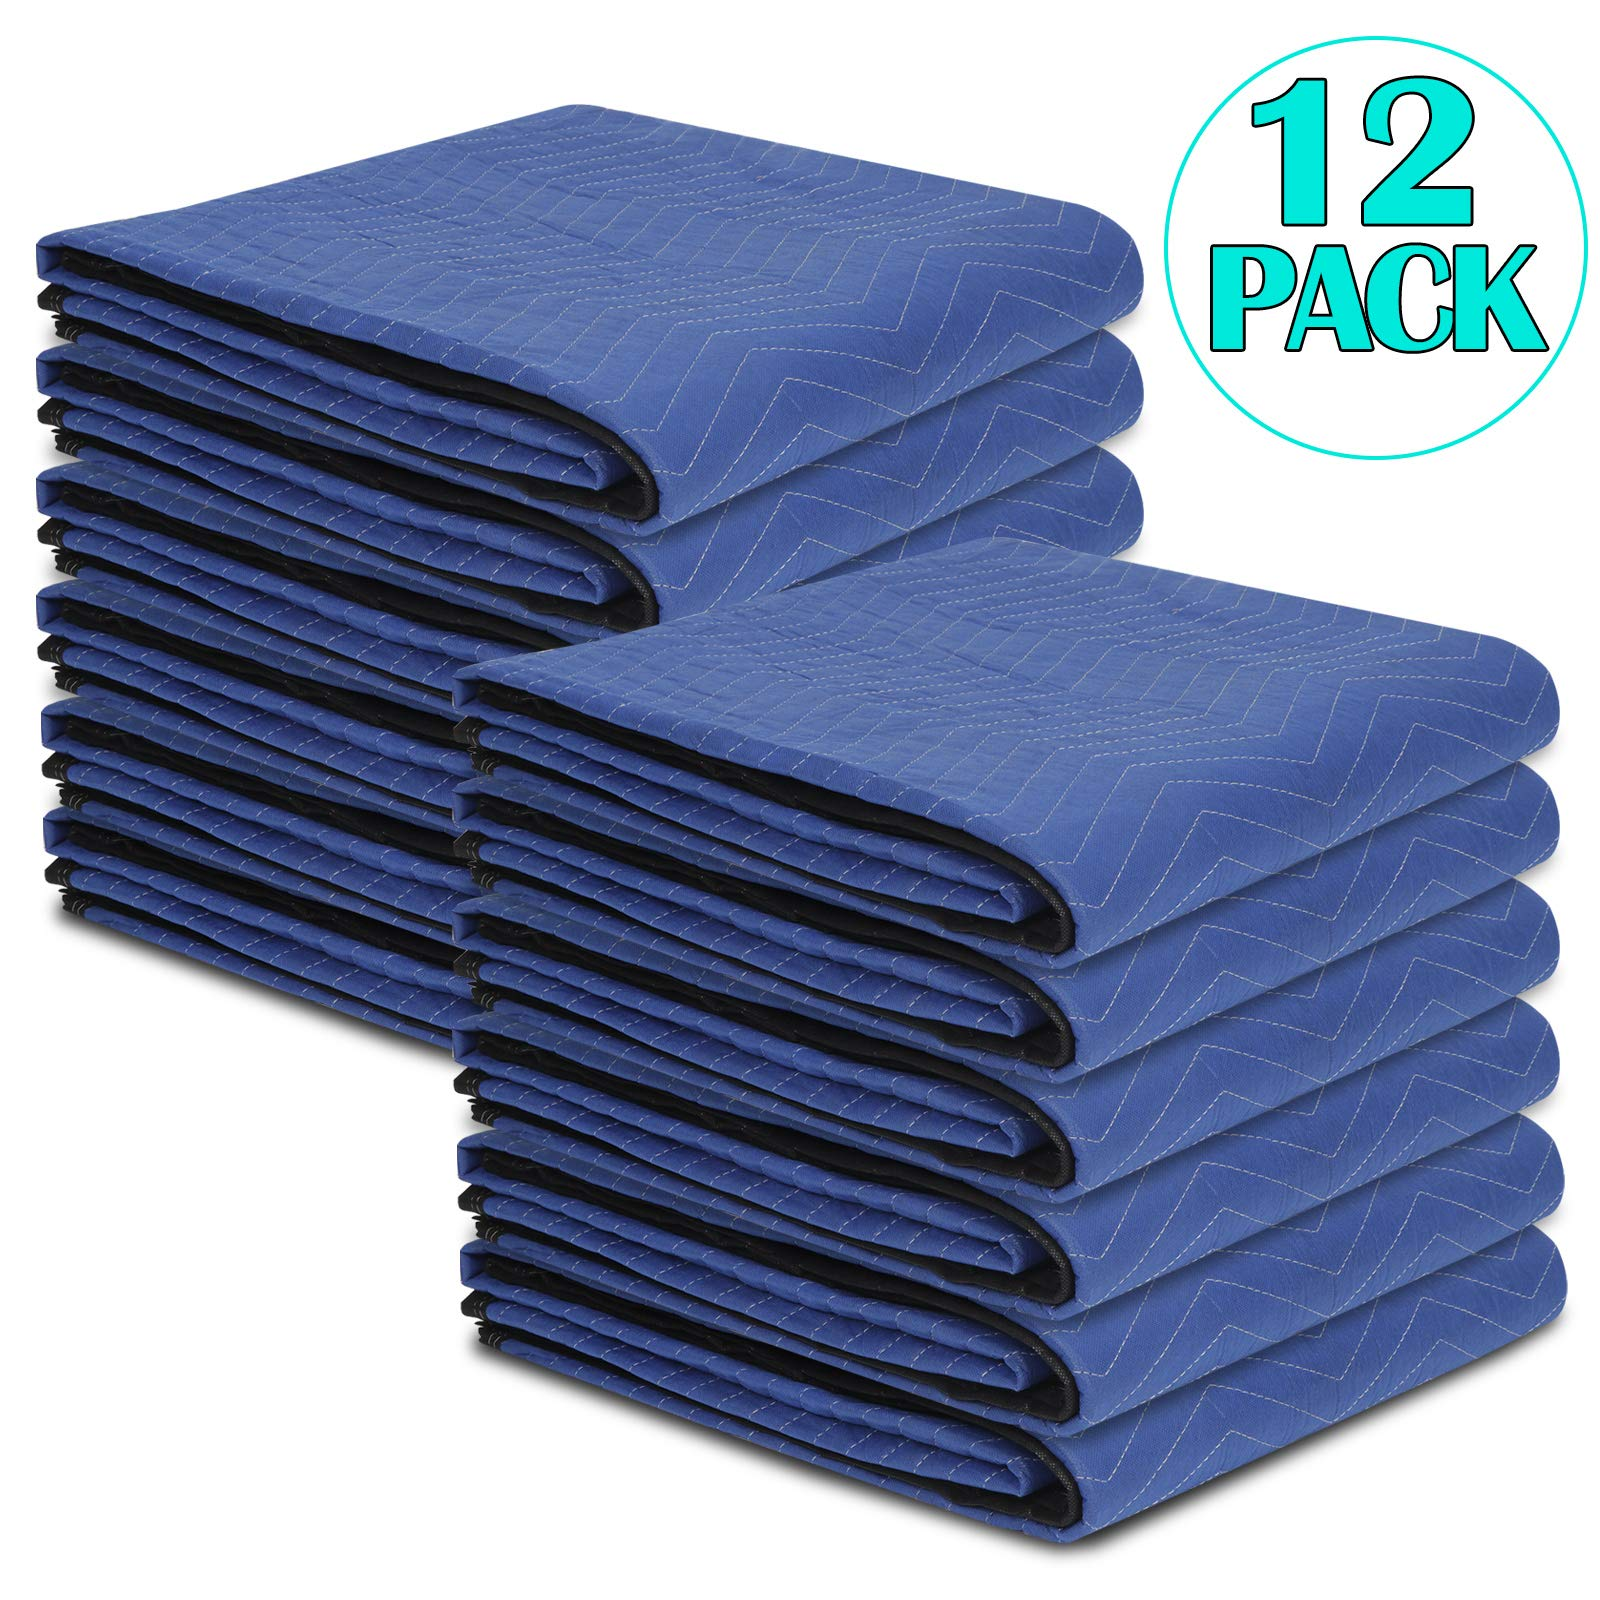 ZENY 12 Moving Blankets Packing Blankets Ultra Thick Pro - 80'' x 72''(35lb/dz Weight) Shipping Furniture Pads Furniture Movers